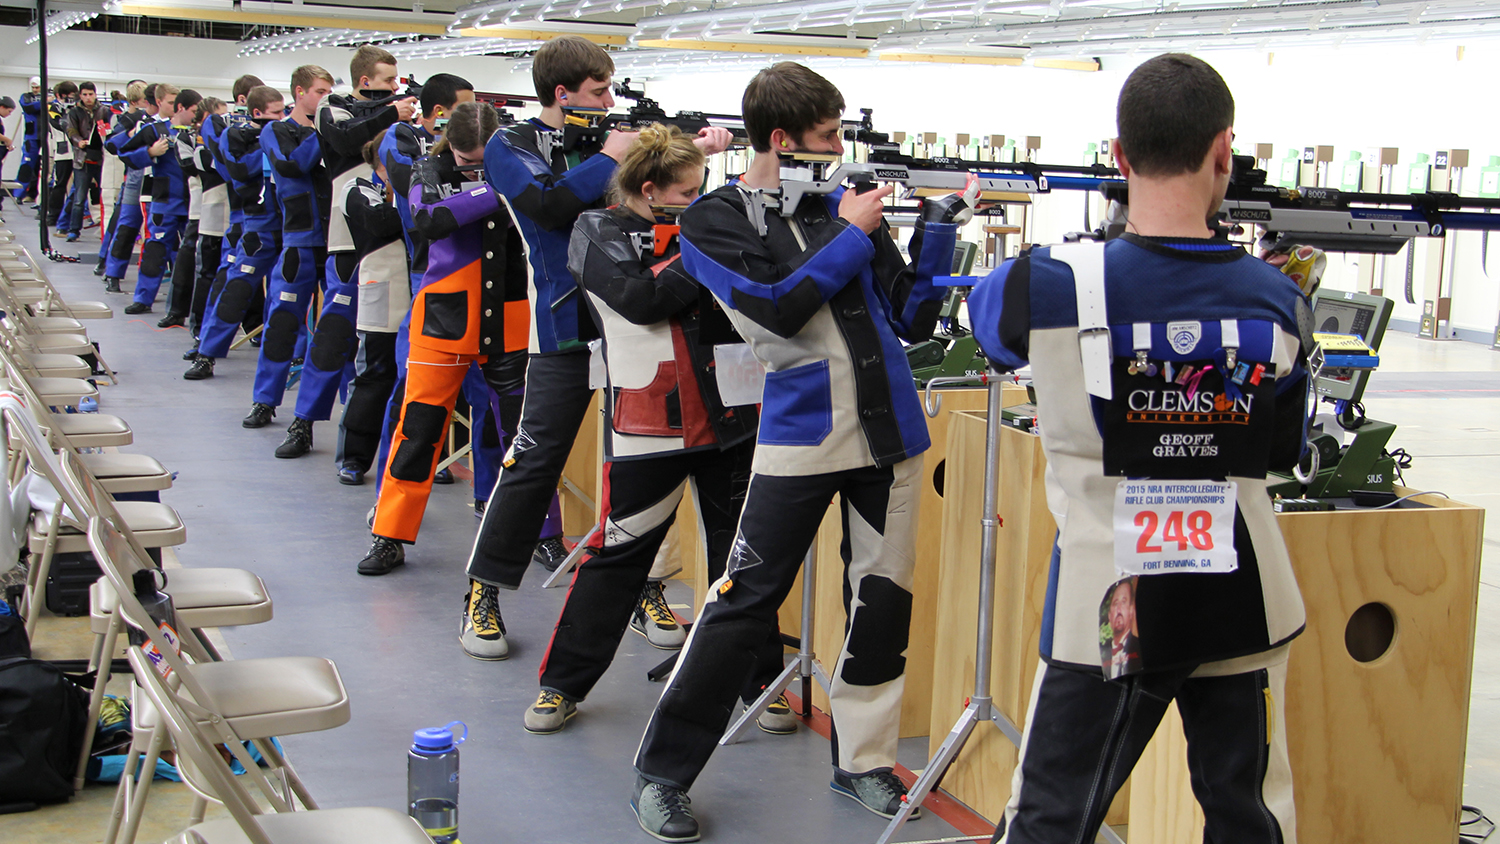 What You Need To Know About The NRA Intercollegiate Rifle And Pistol Club Championships